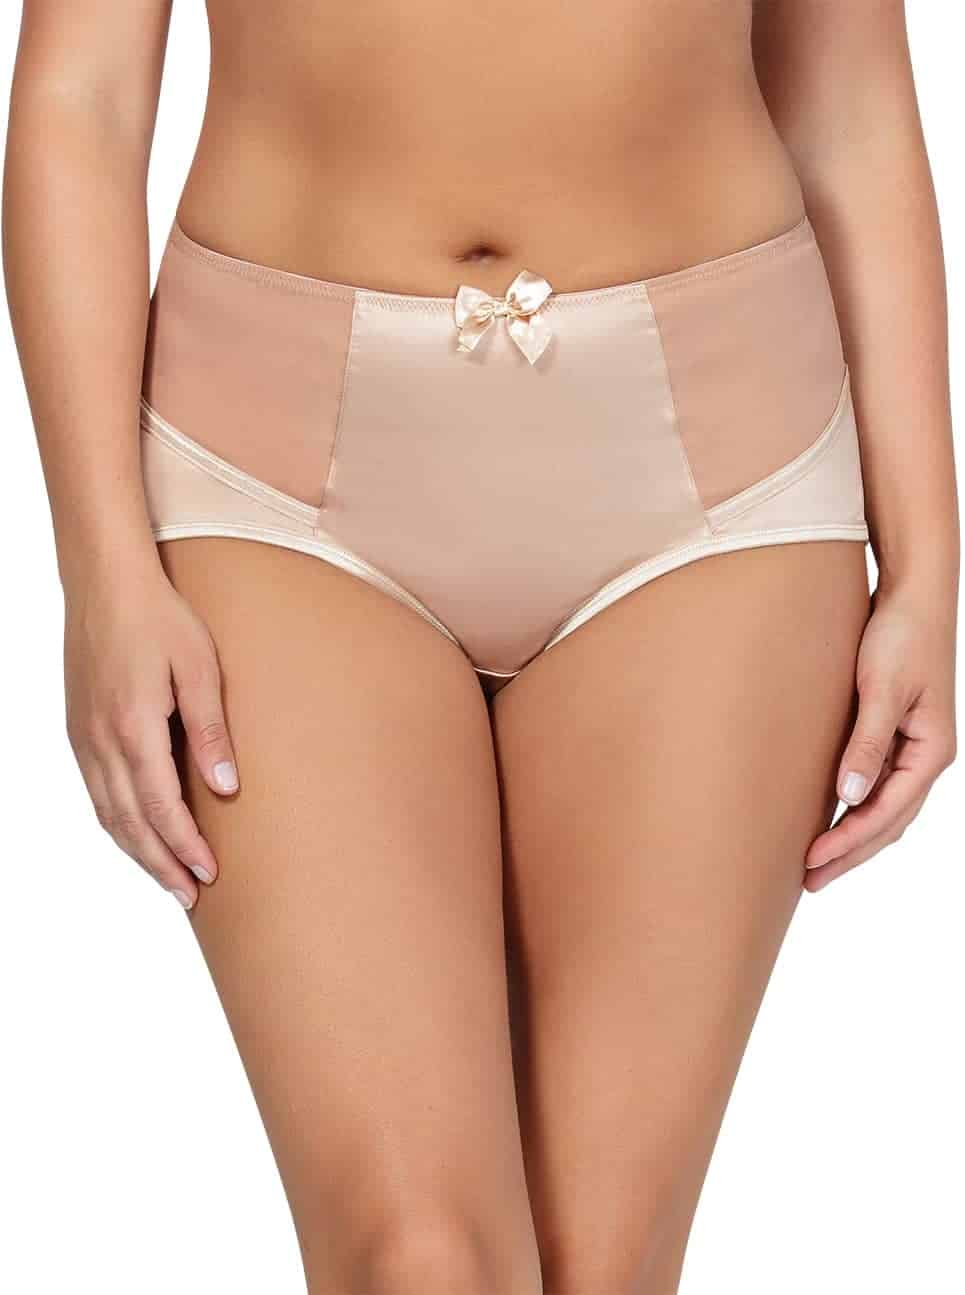 Charlotte HighwaistBrief6917 TrueNude Front2 - Charlotte Highwaist Brief - True Nude - 6917